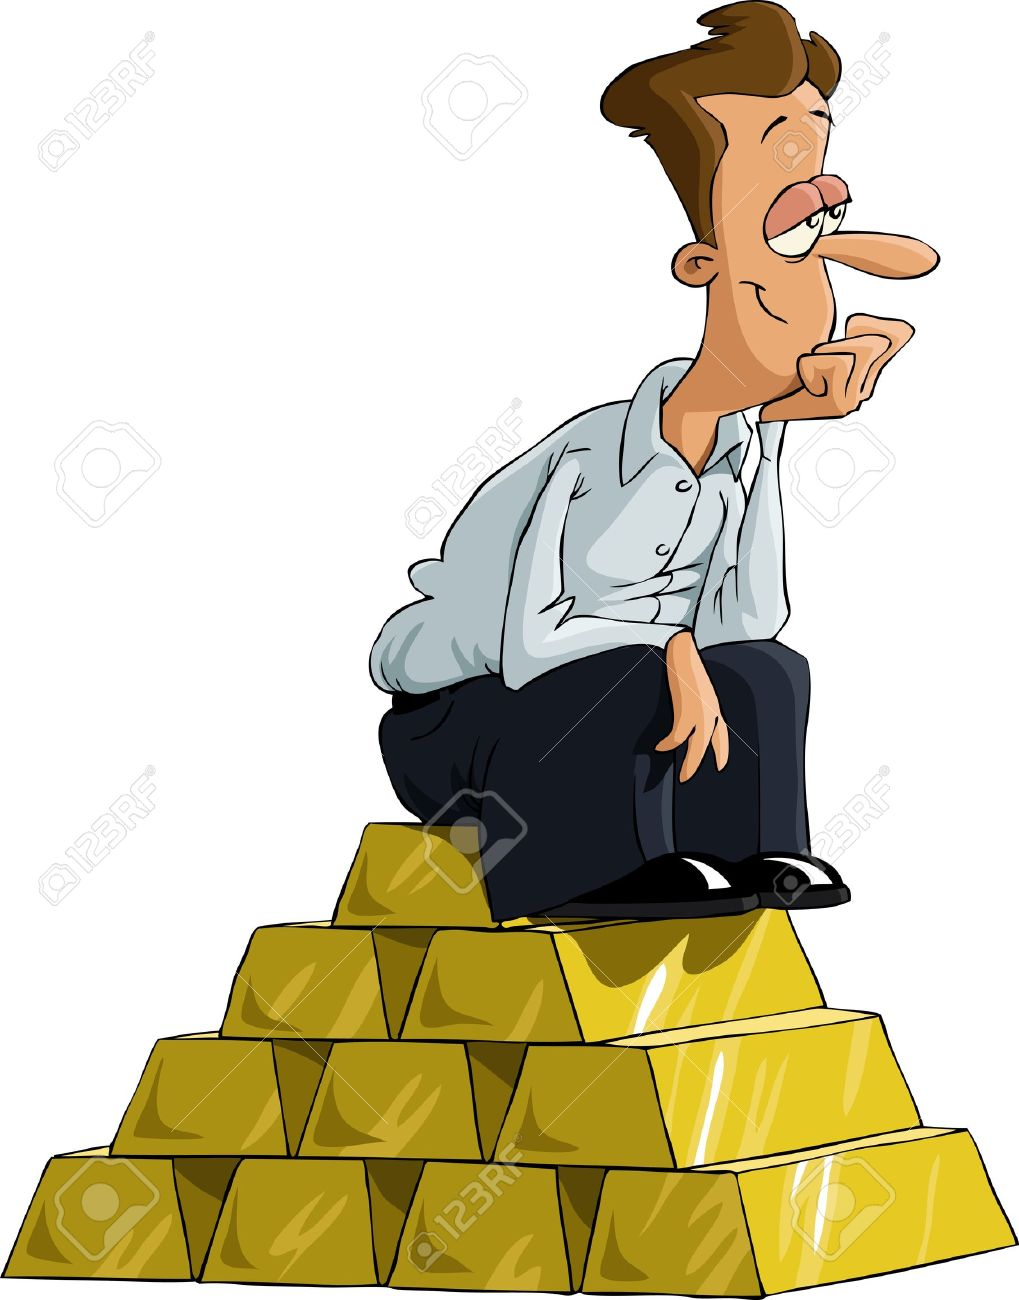 A Man Sitting On A Gold Bullion, Vector Royalty Free Cliparts.